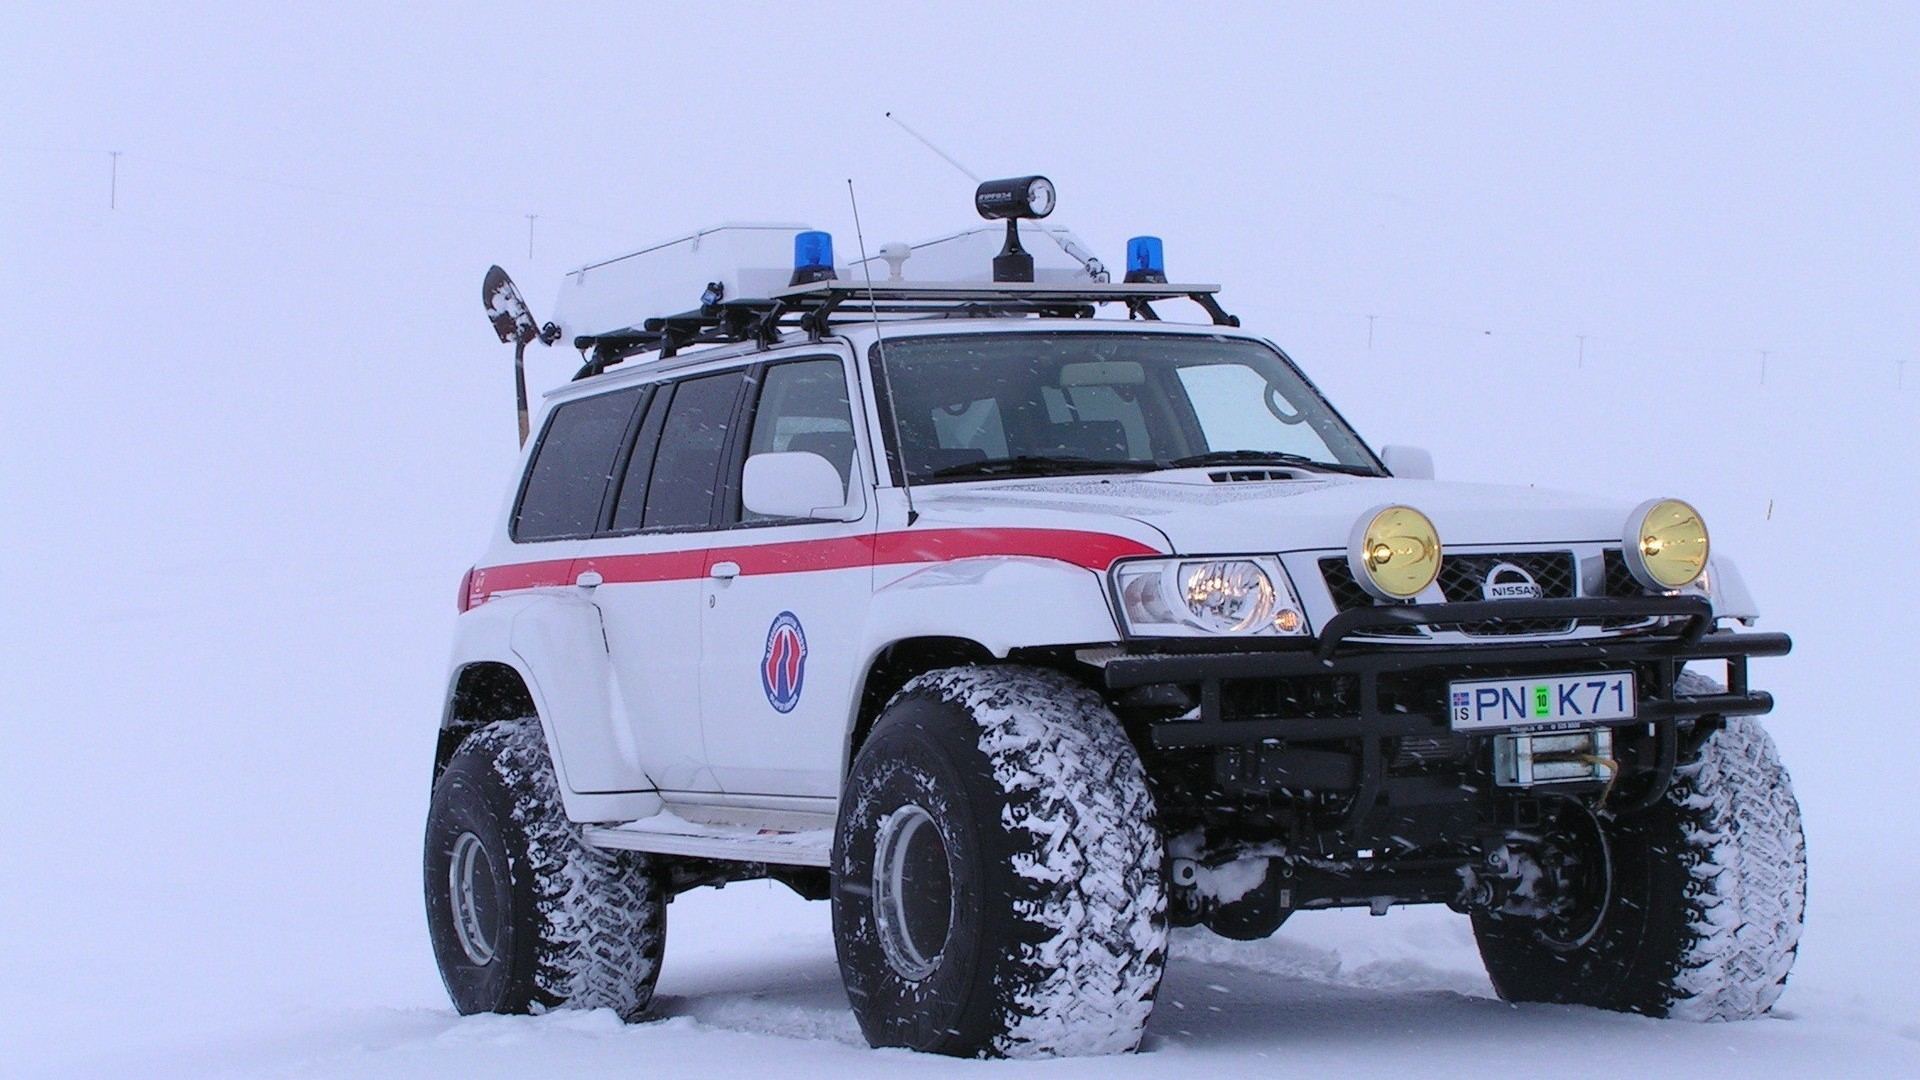 Crazy Iphone 5 Wallpapers Nissan Patrol Arctic Truck Cars Snow Wallpaper